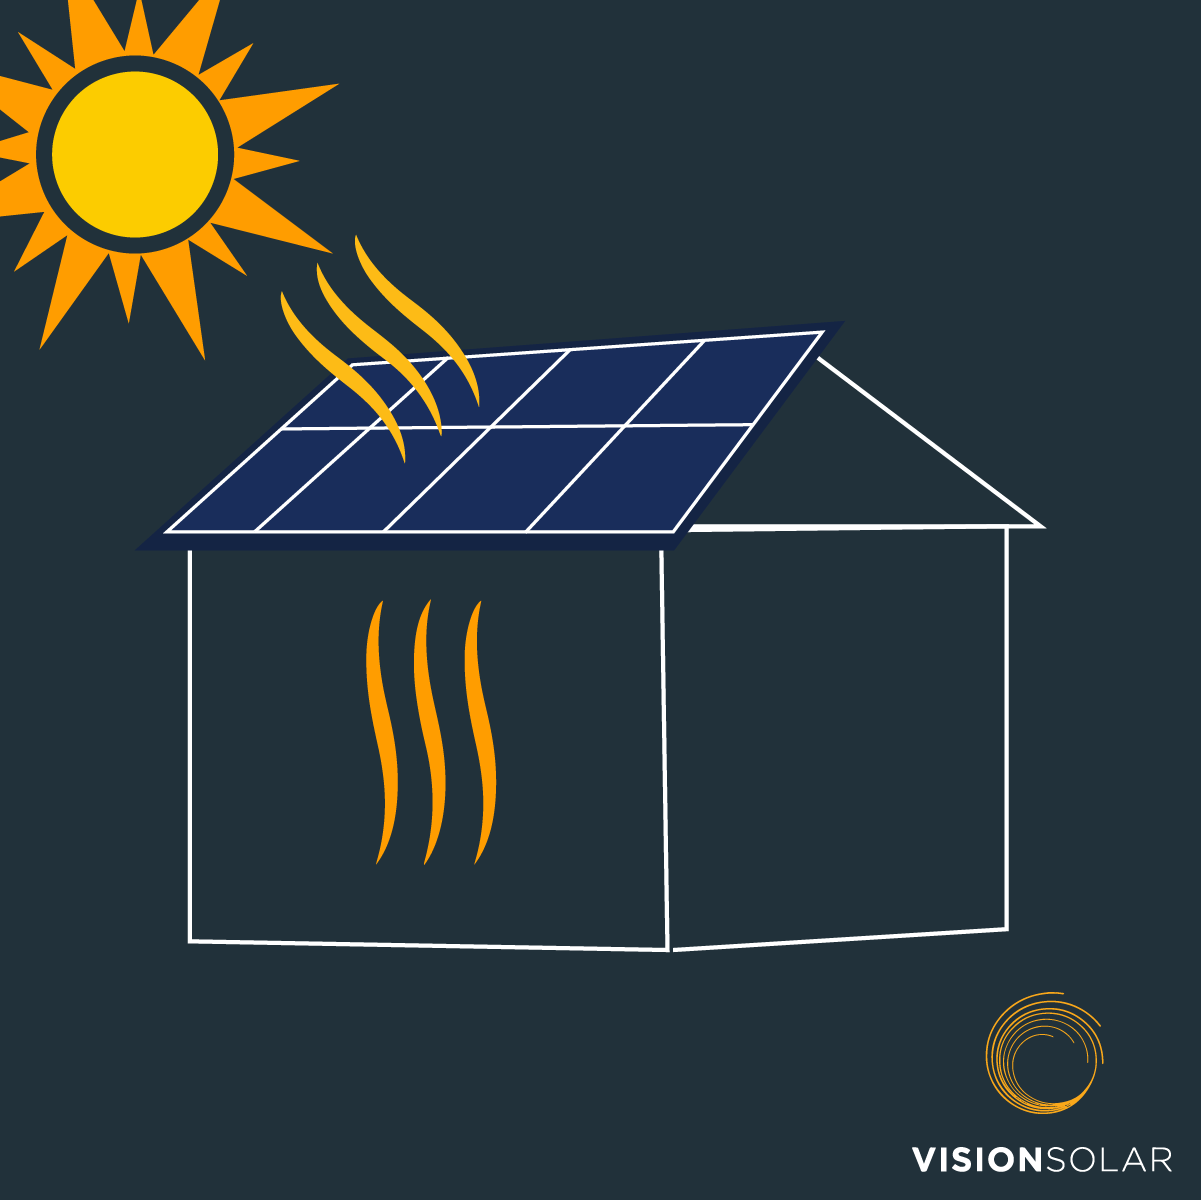 Vision Solar : What is the Definition of Solar?